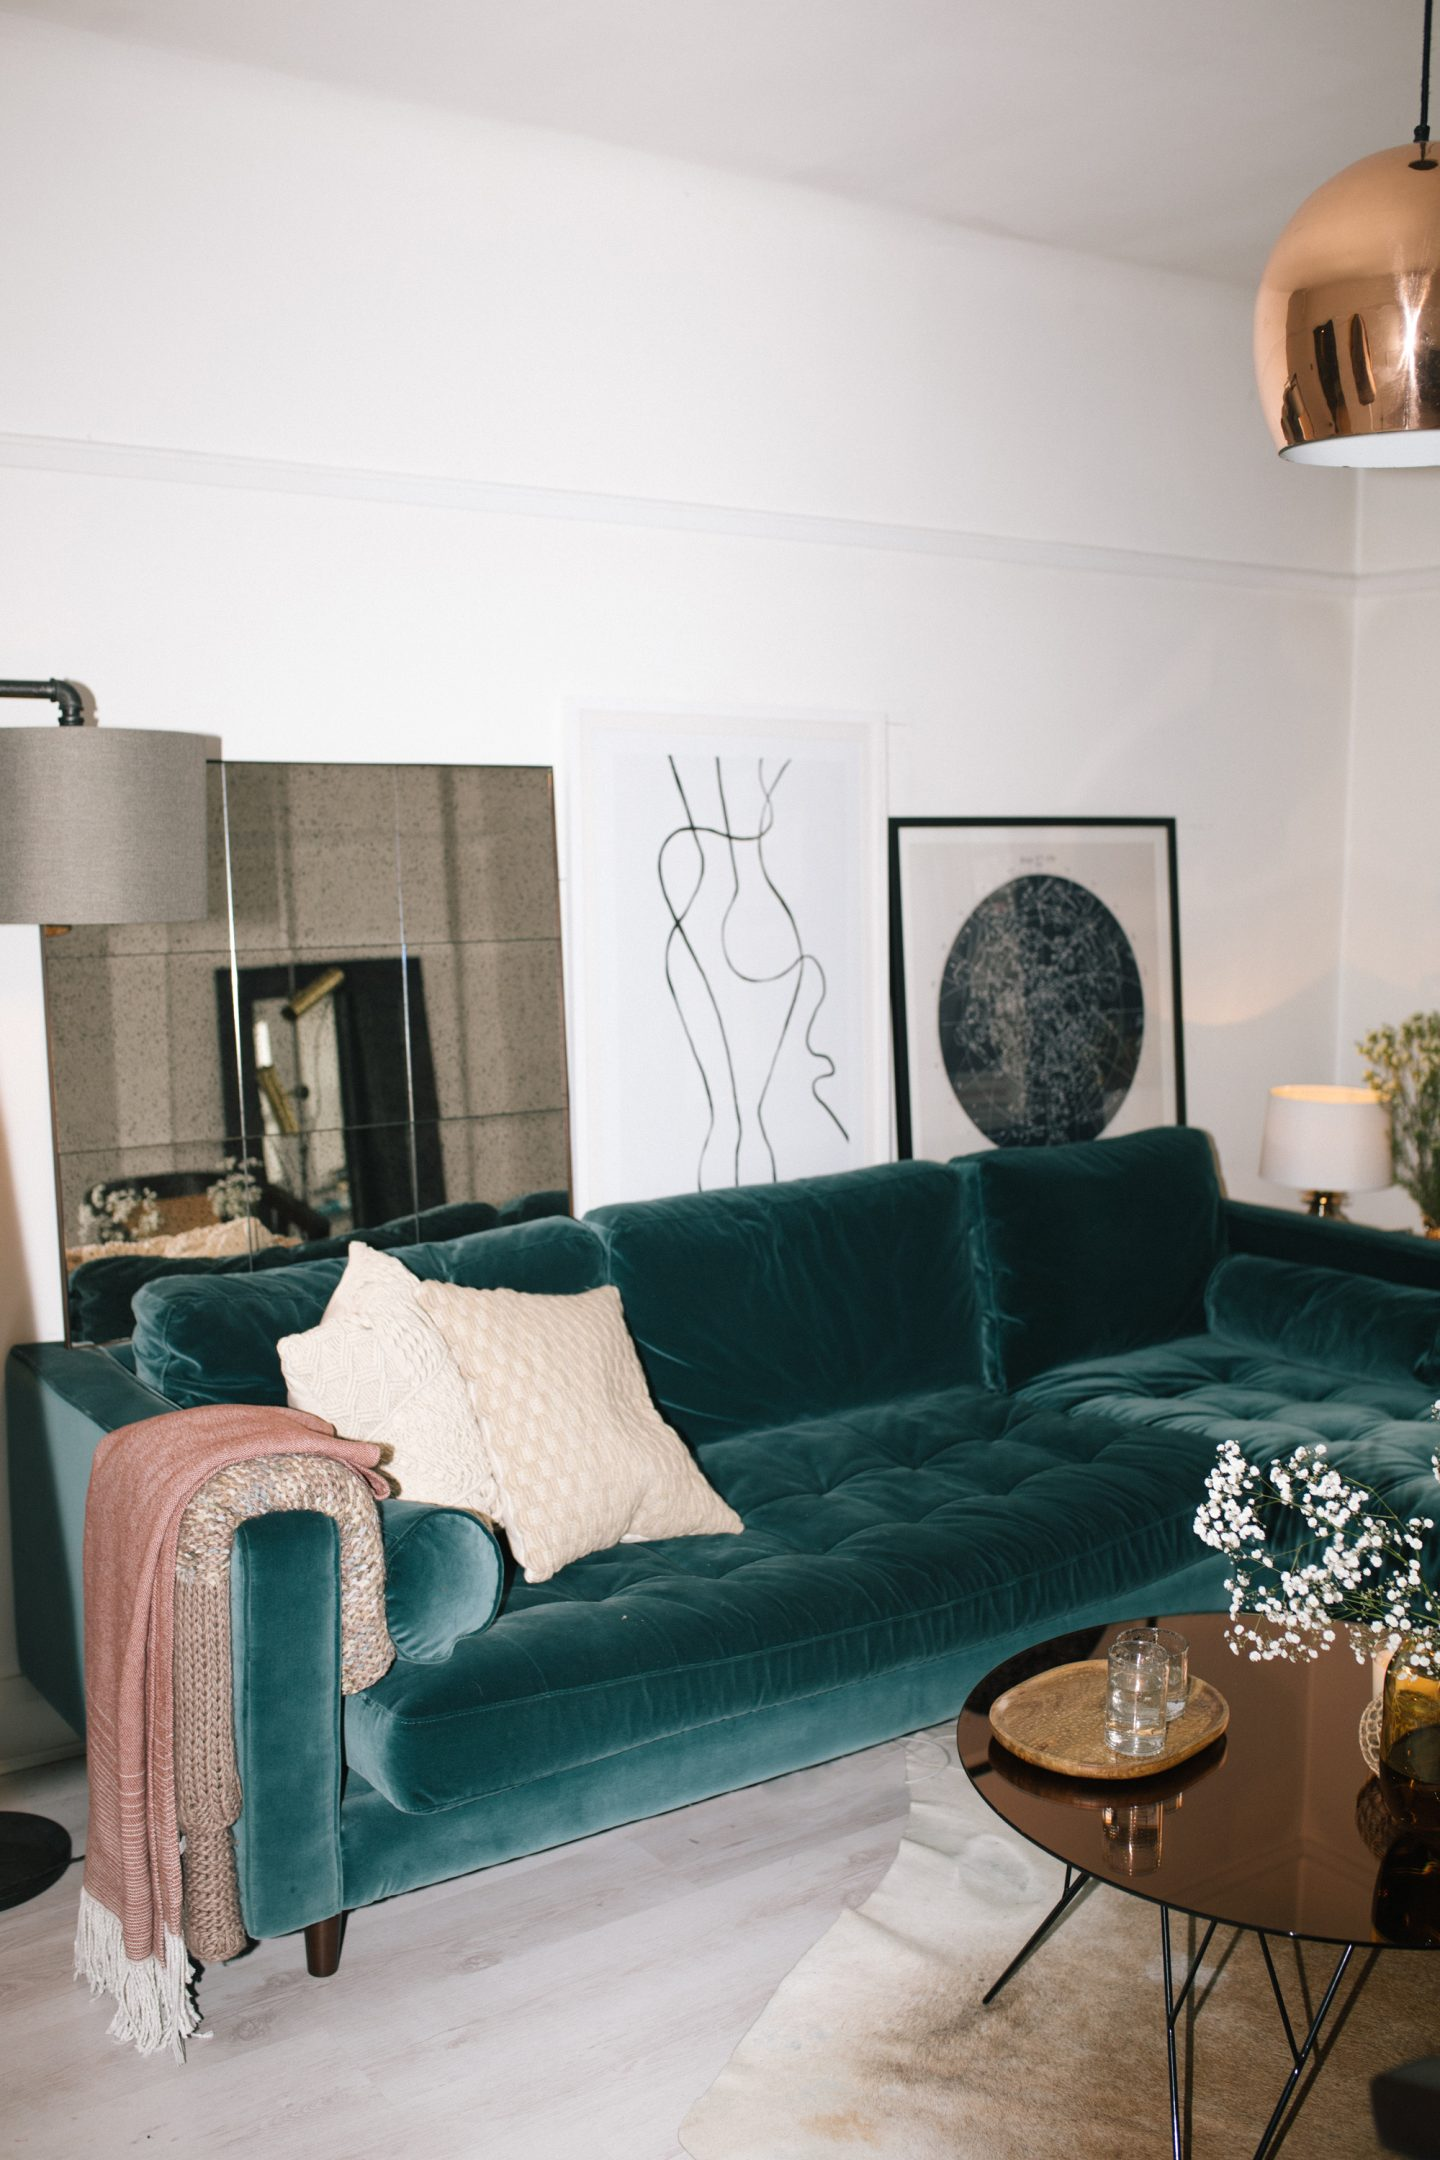 MY TOP 6 TIPS FOR FURNISHING A SMALL FLAT